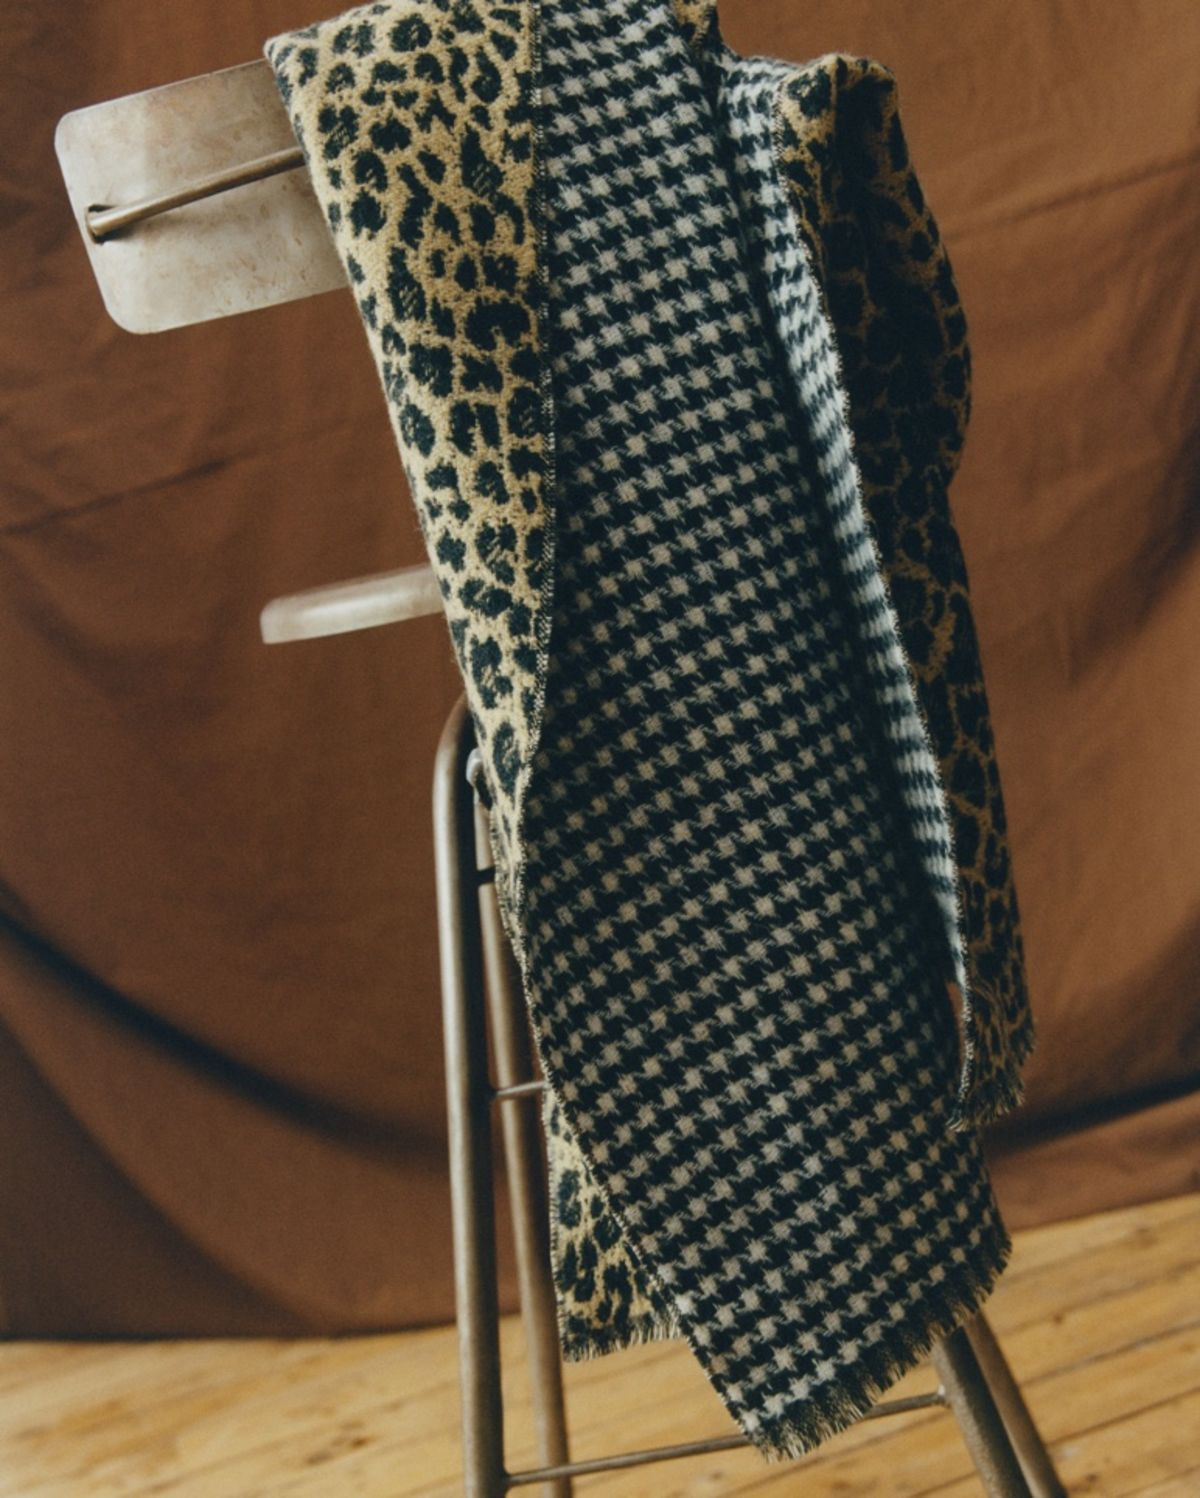 Shot taken in a studio of a reversible scarf resting on the back of a chair. One side of the scarf has a leopard pattern, the other side a black and white dogtooth pattern.